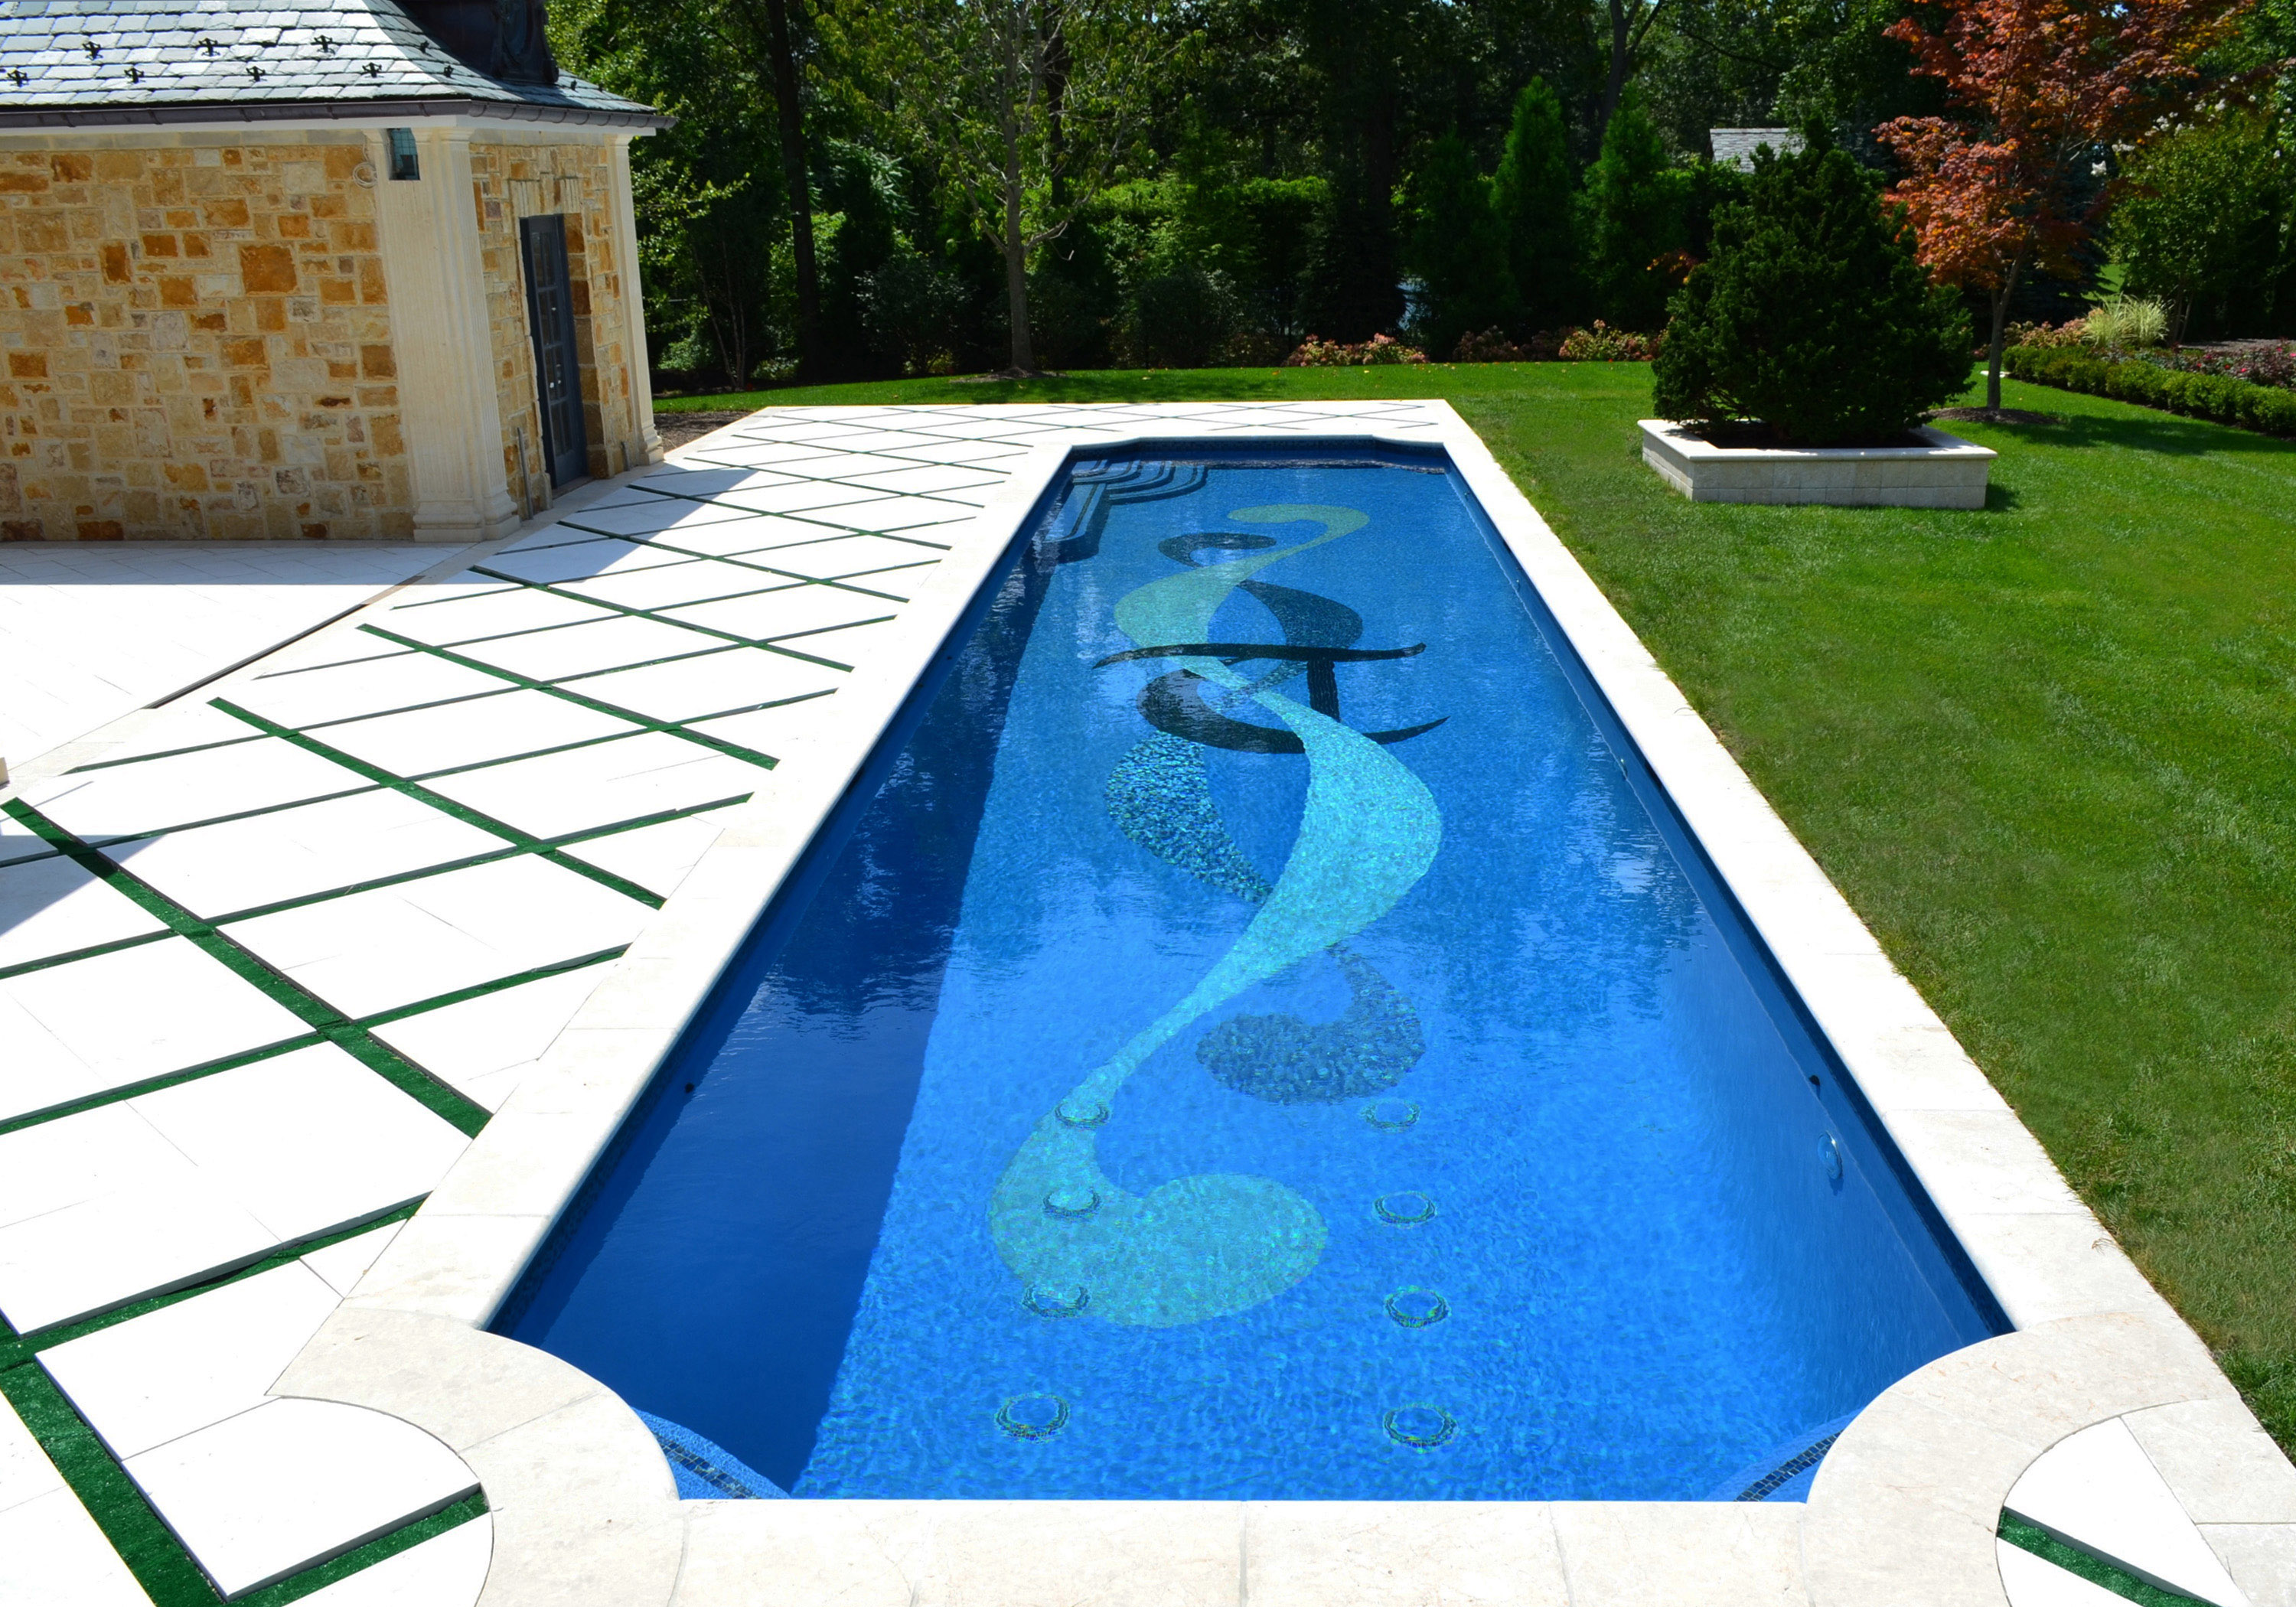 Swimming Pool Tile Designs : ... County, NJ Landscape Architecture Office Wins 2013 Best Pool Design